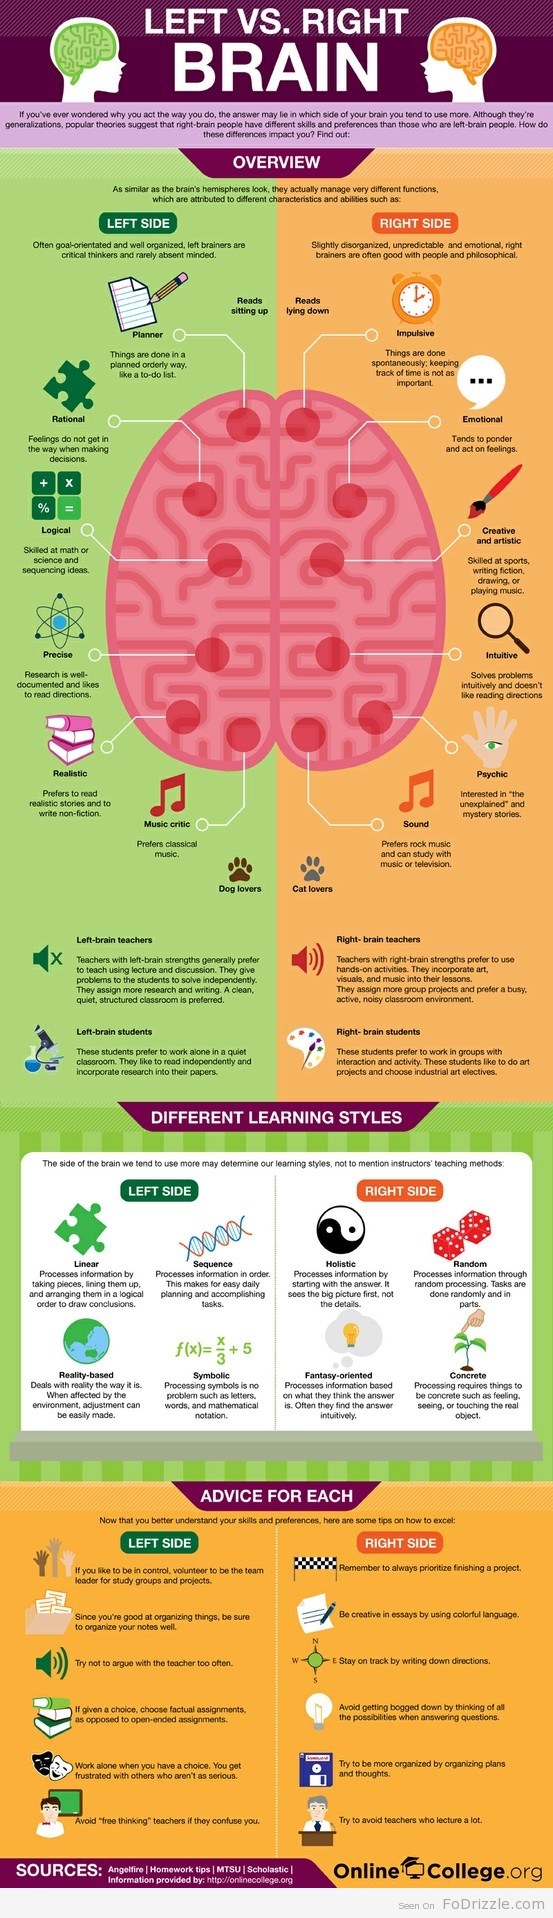 Left brain vs right brain. Use this to see what side are you?